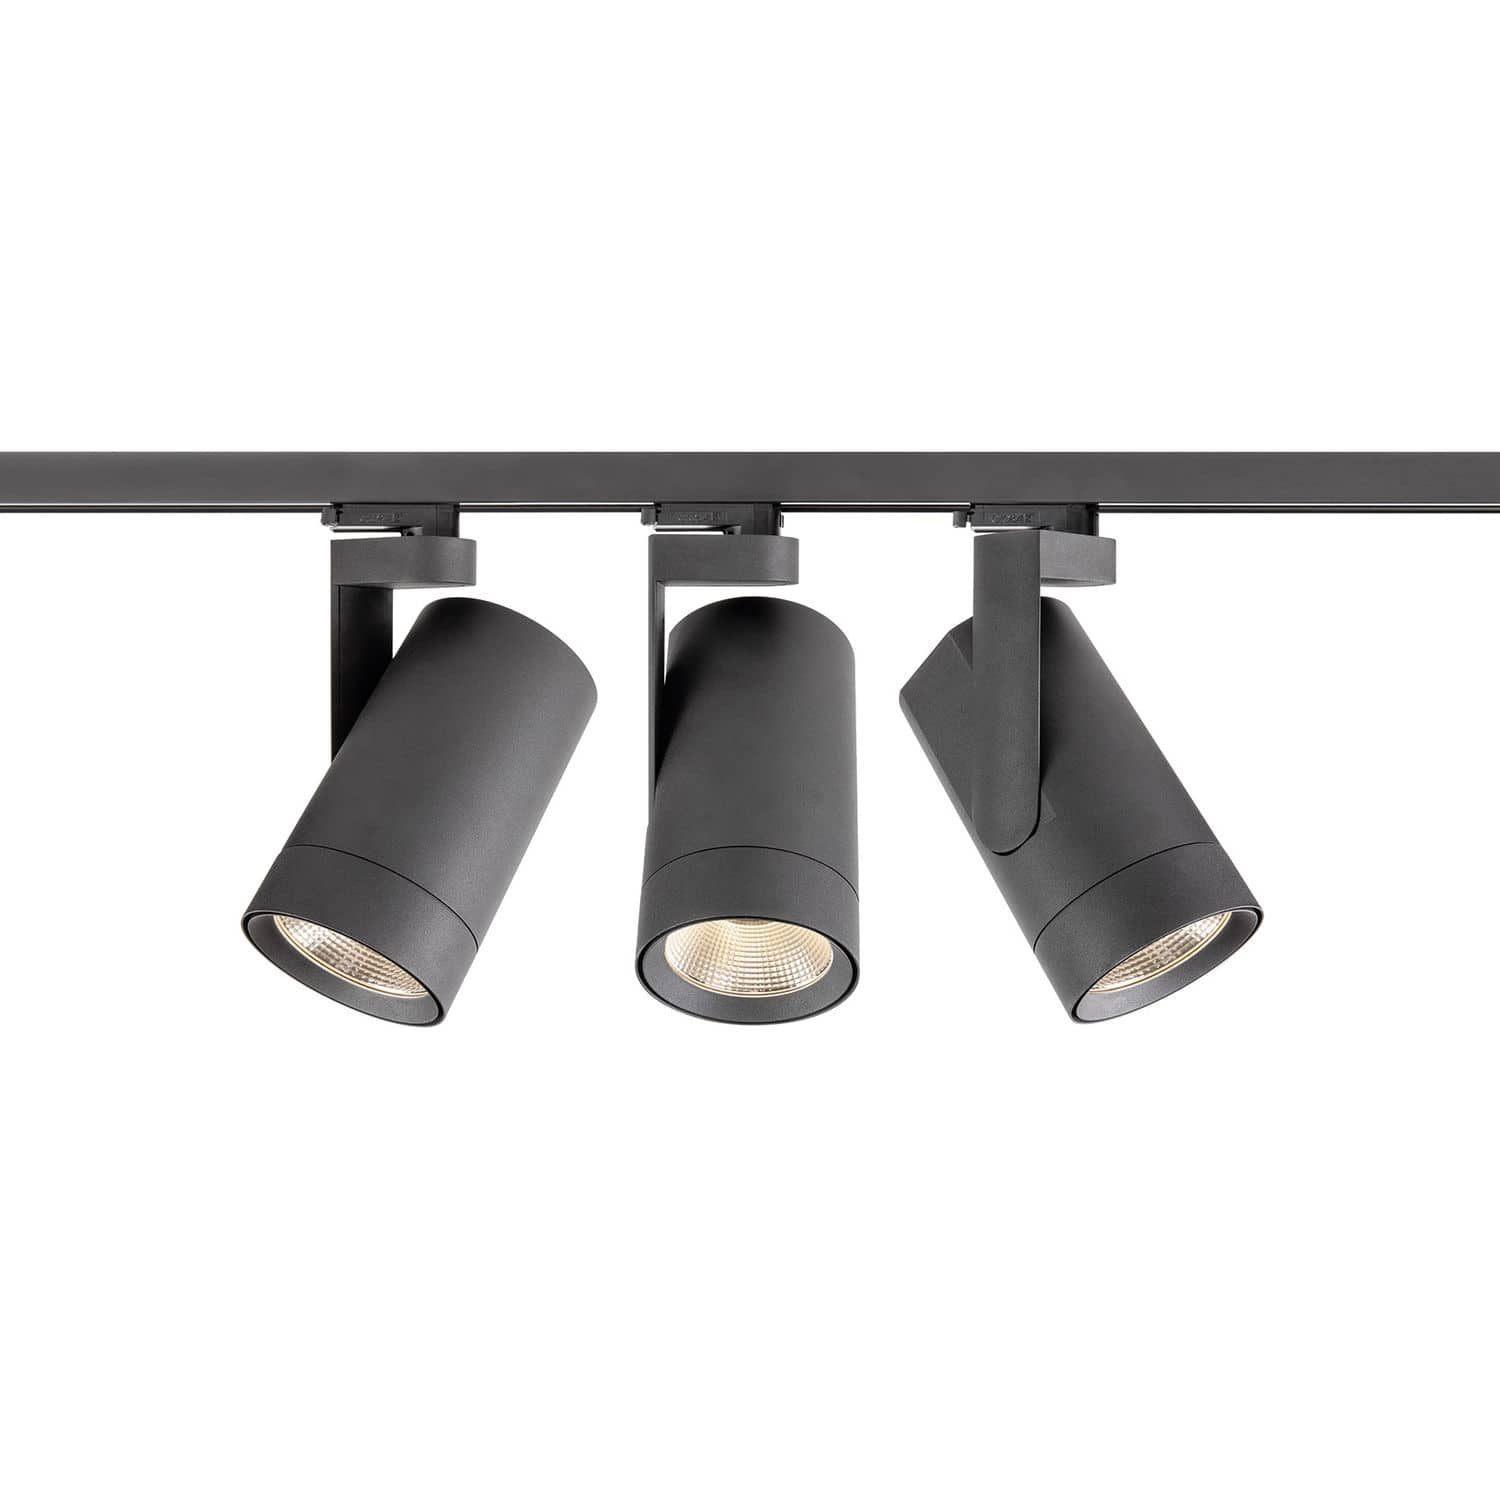 Led track light round metal commercial kanon modular led track light round metal commercial kanon modular lighting instruments mozeypictures Images